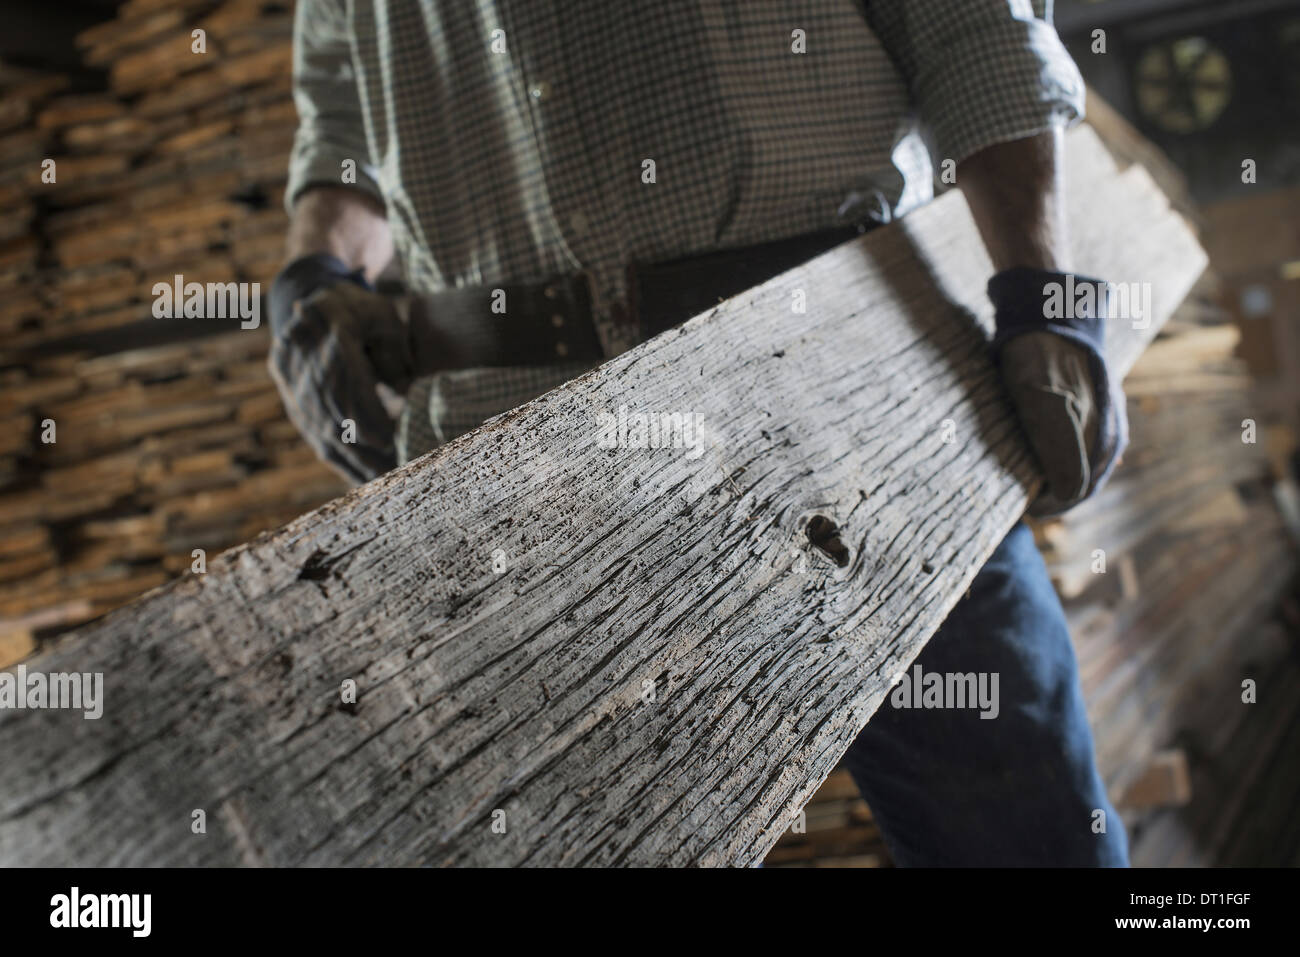 A heap of recycled reclaimed timber planks of wood Environment A man carrying a large plank of mature weathered - Stock Image